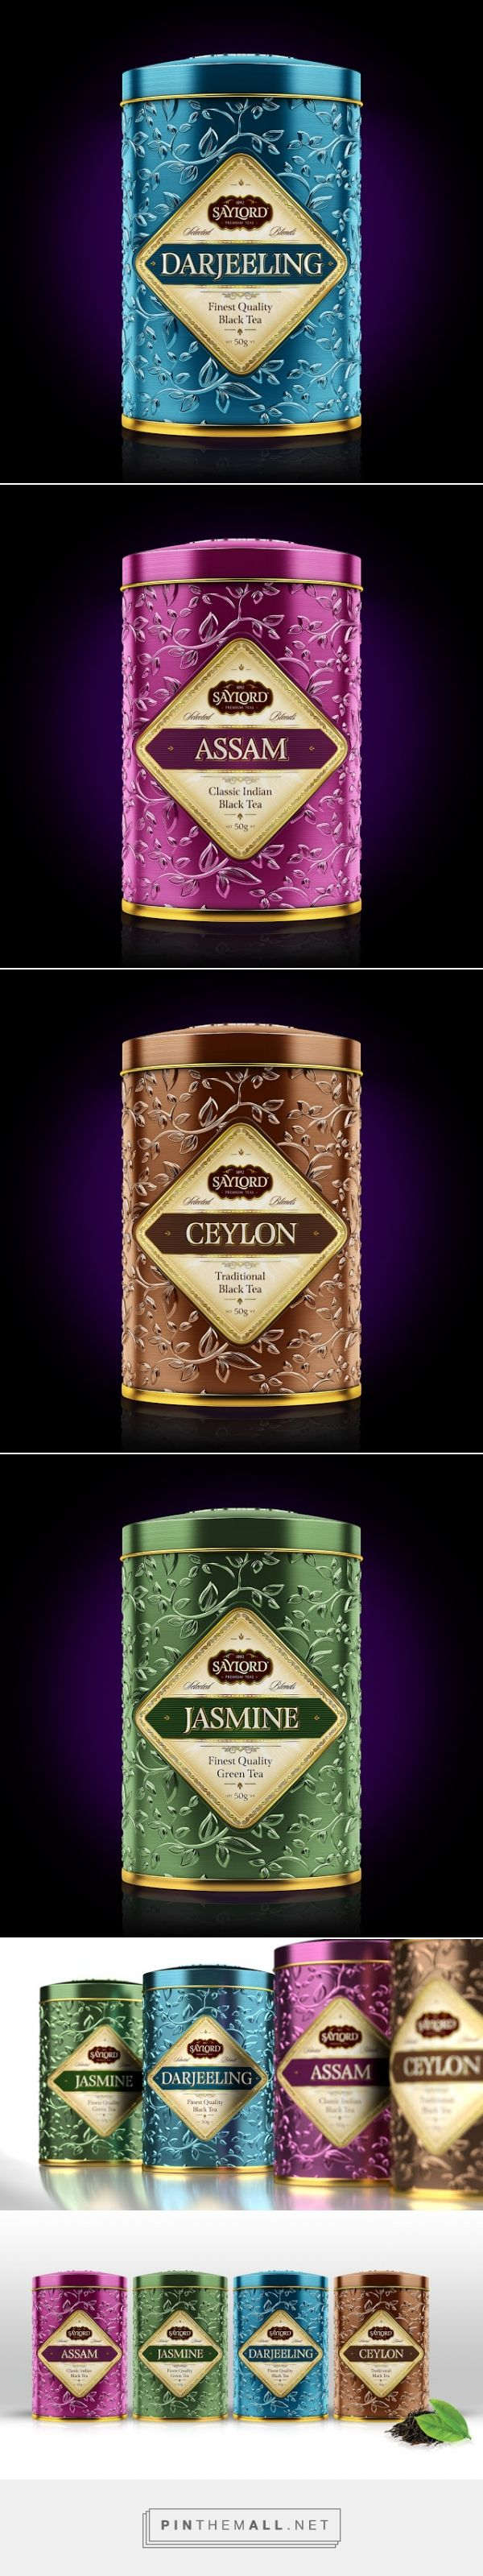 SAYLORD Premium Teas (Concept) by Paulo Madeira & Anastasia Ziemba. Pin curated by SFields99.